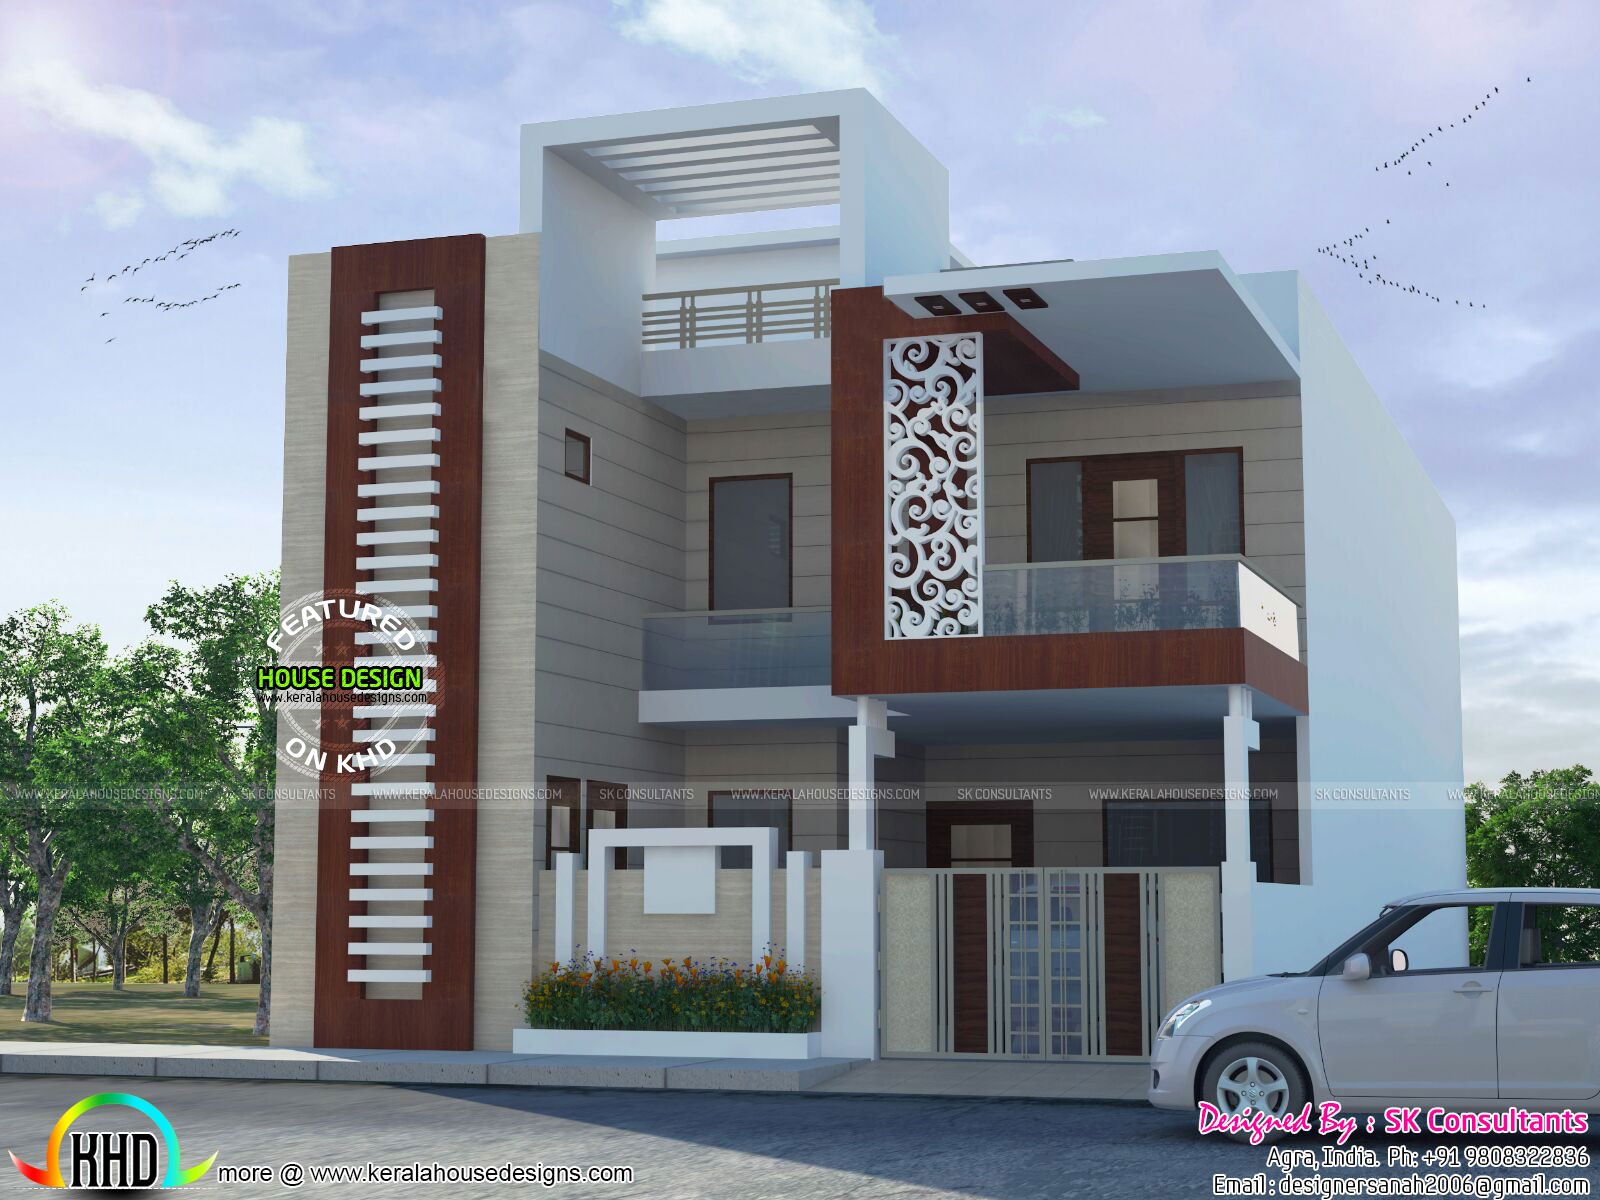 Elite Decorative House Plansk Consultants - Kerala Home Design And within Awesome Indian Home Exterior Design